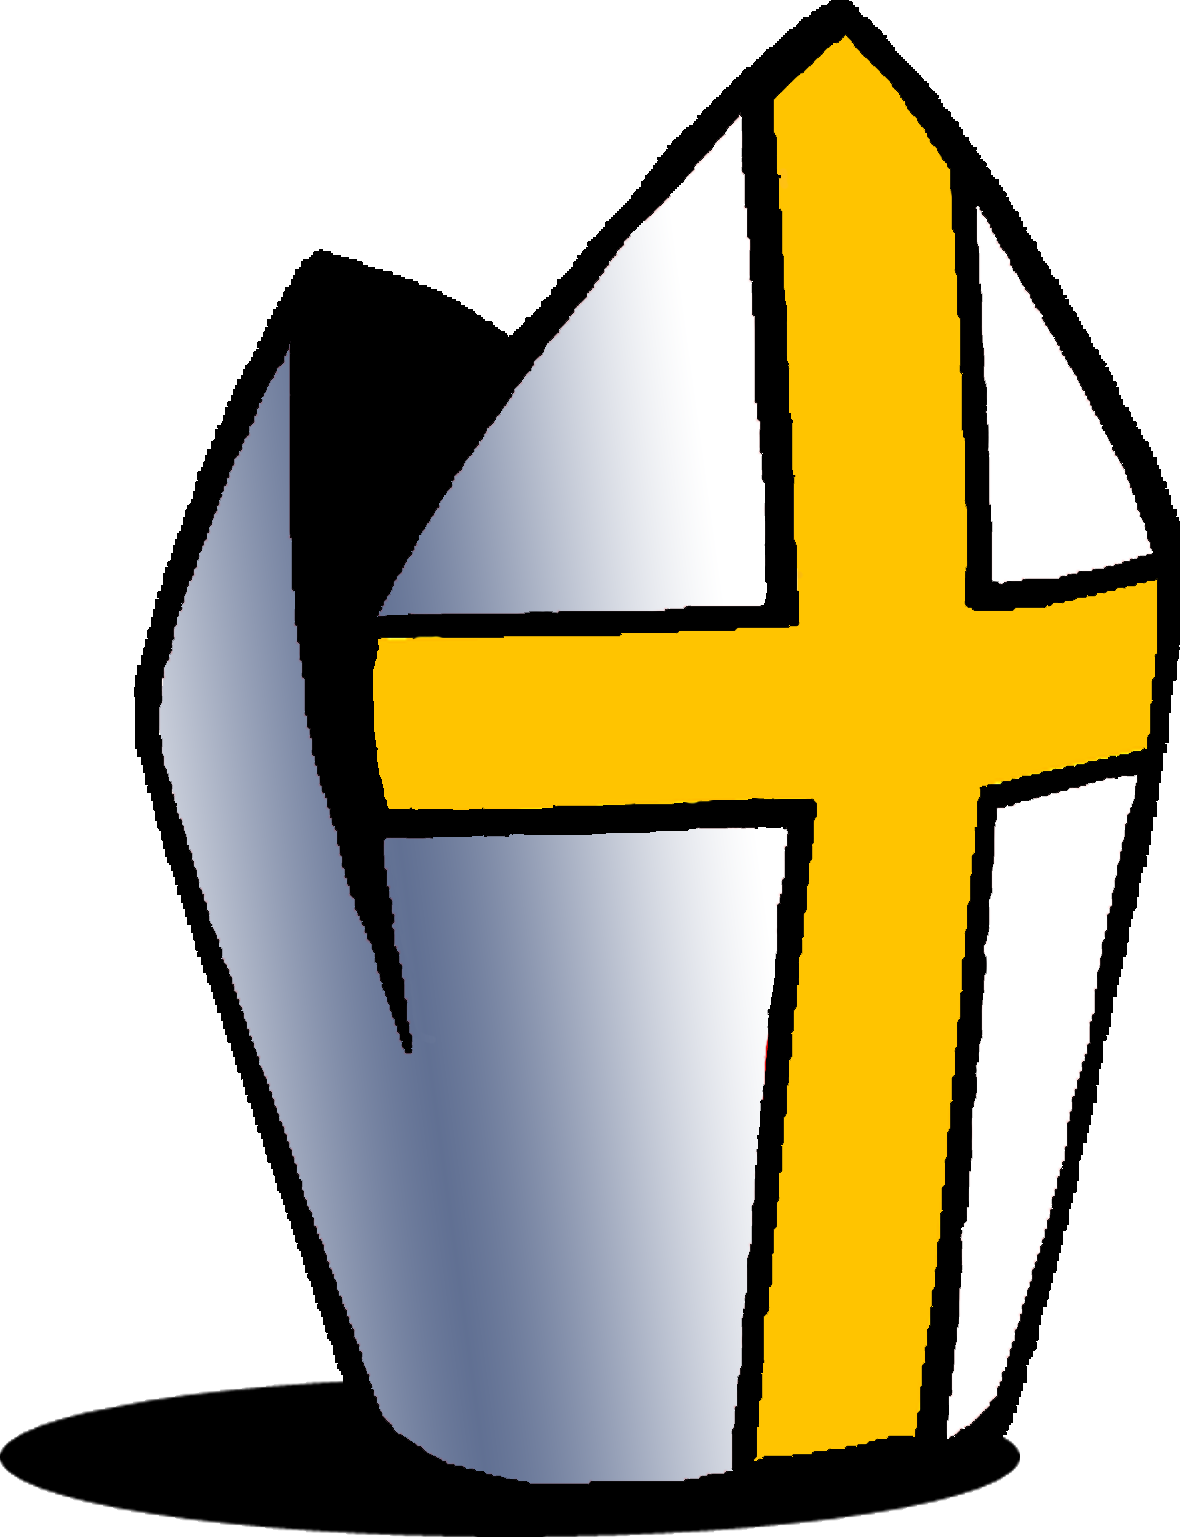 Pope Hat Drawing Through Lawfare | Popehat